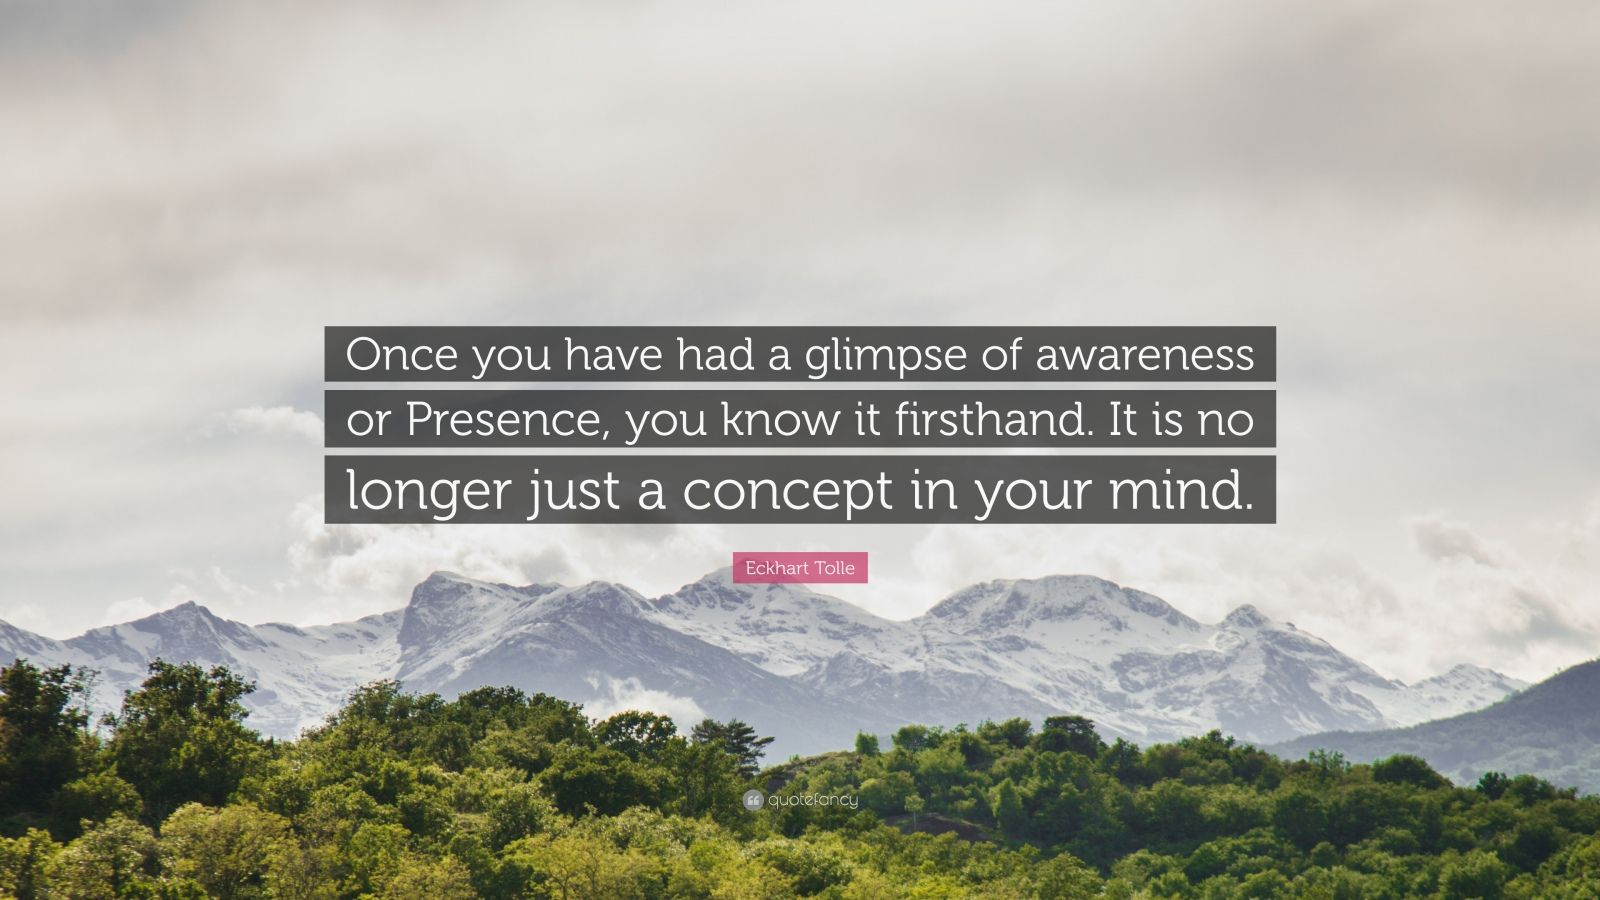 """Eckhart Tolle Quote: """"Once you have had a glimpse of awareness or Presence, you know it firsthand. It is no longer just a concept in your mind."""""""